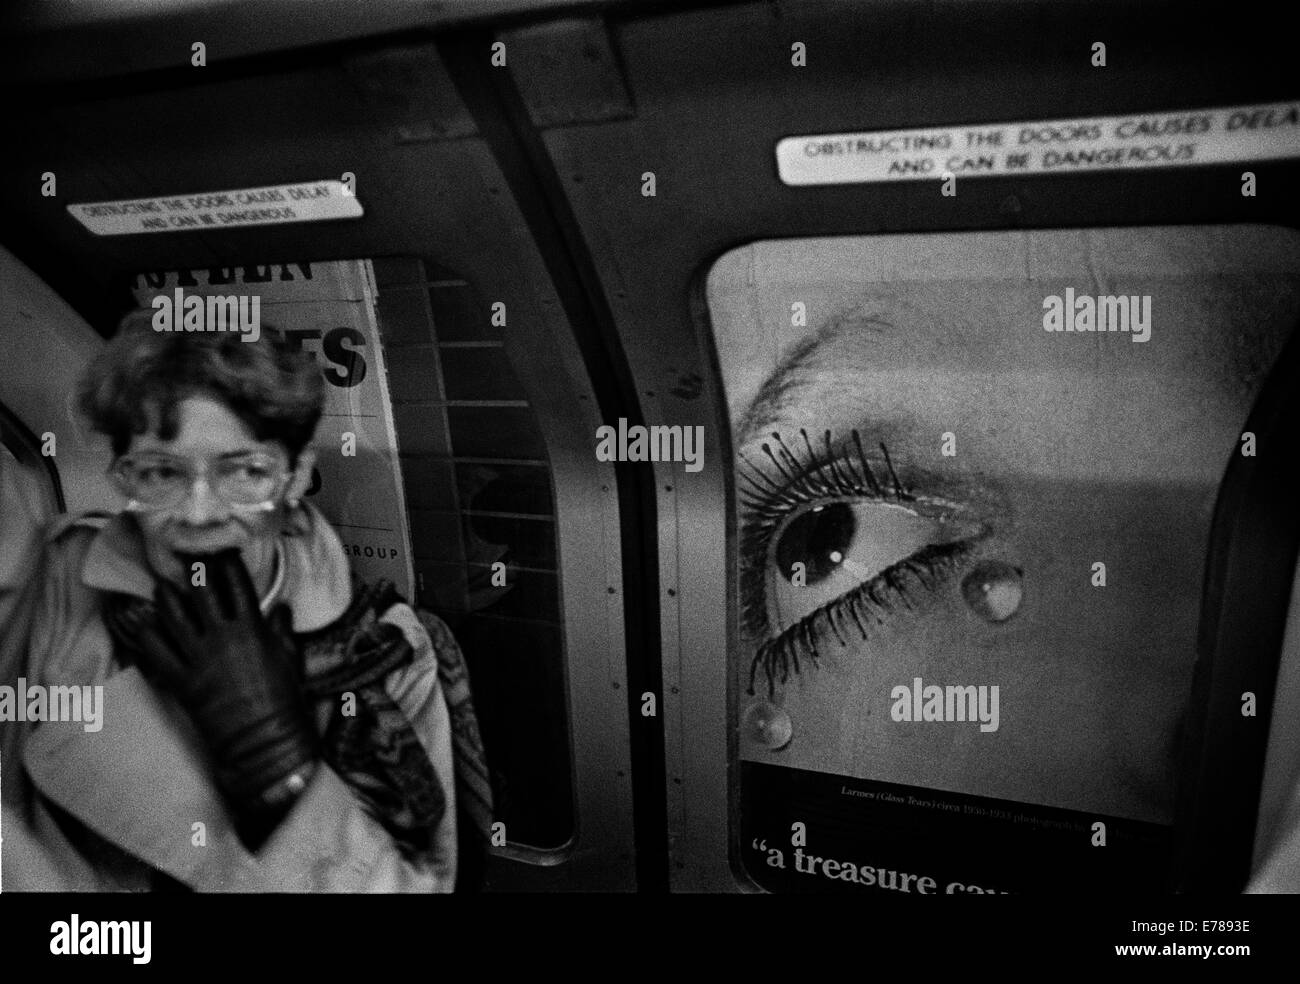 Woman in tube with Man Ray poster in the background. - Stock Image